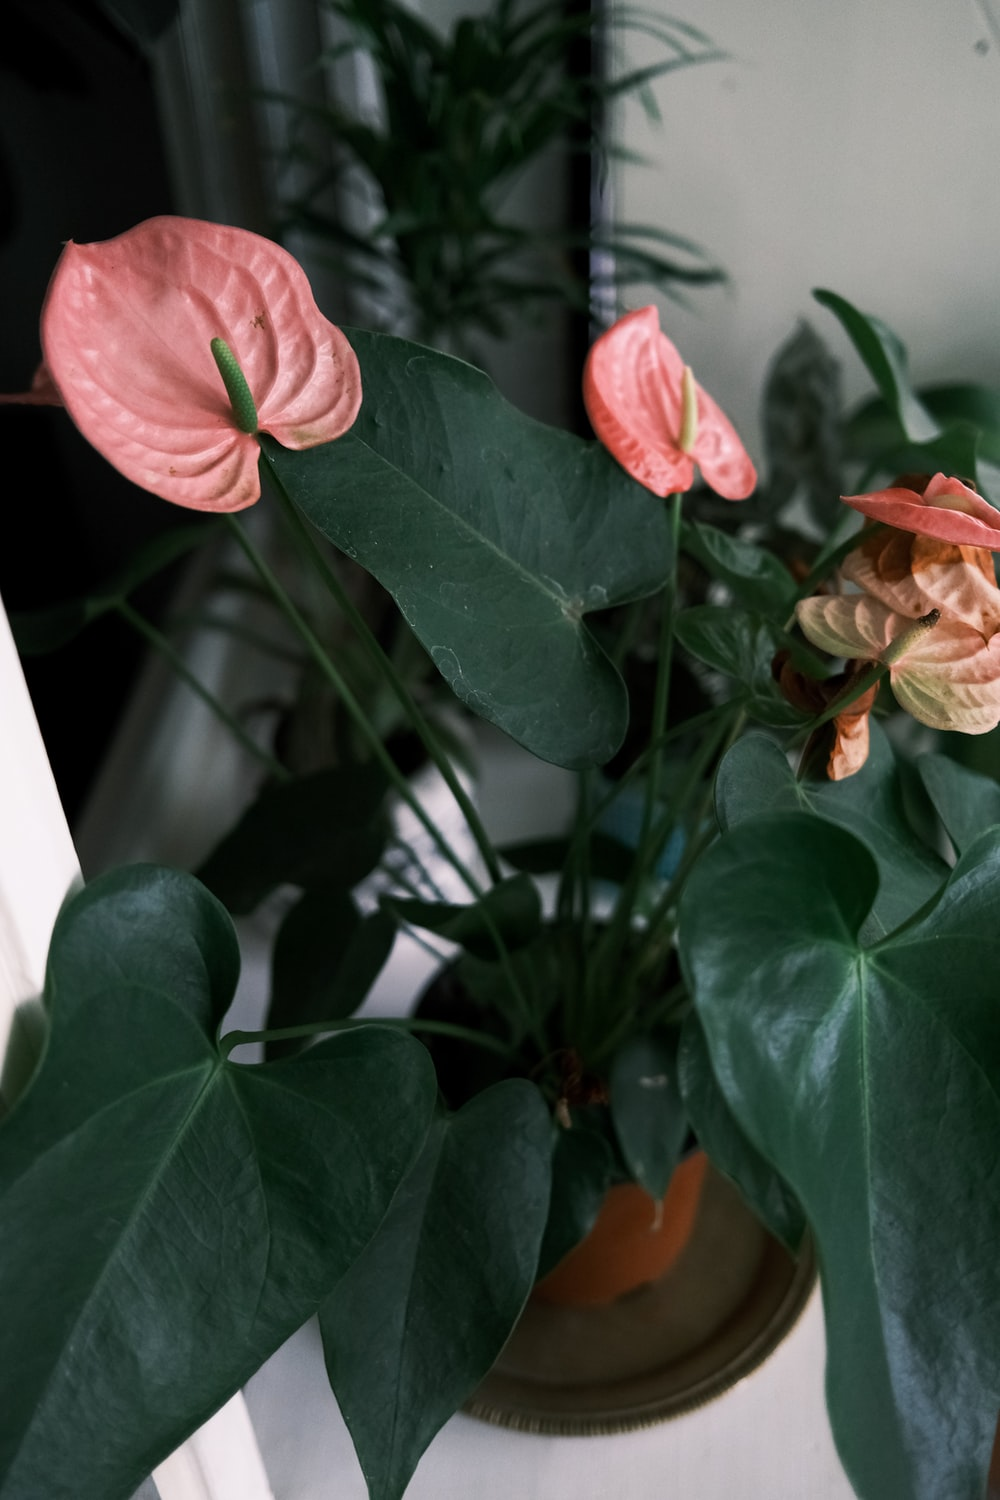 Pink Flower With Green Leaves Photo Free Anthurium Image On Unsplash